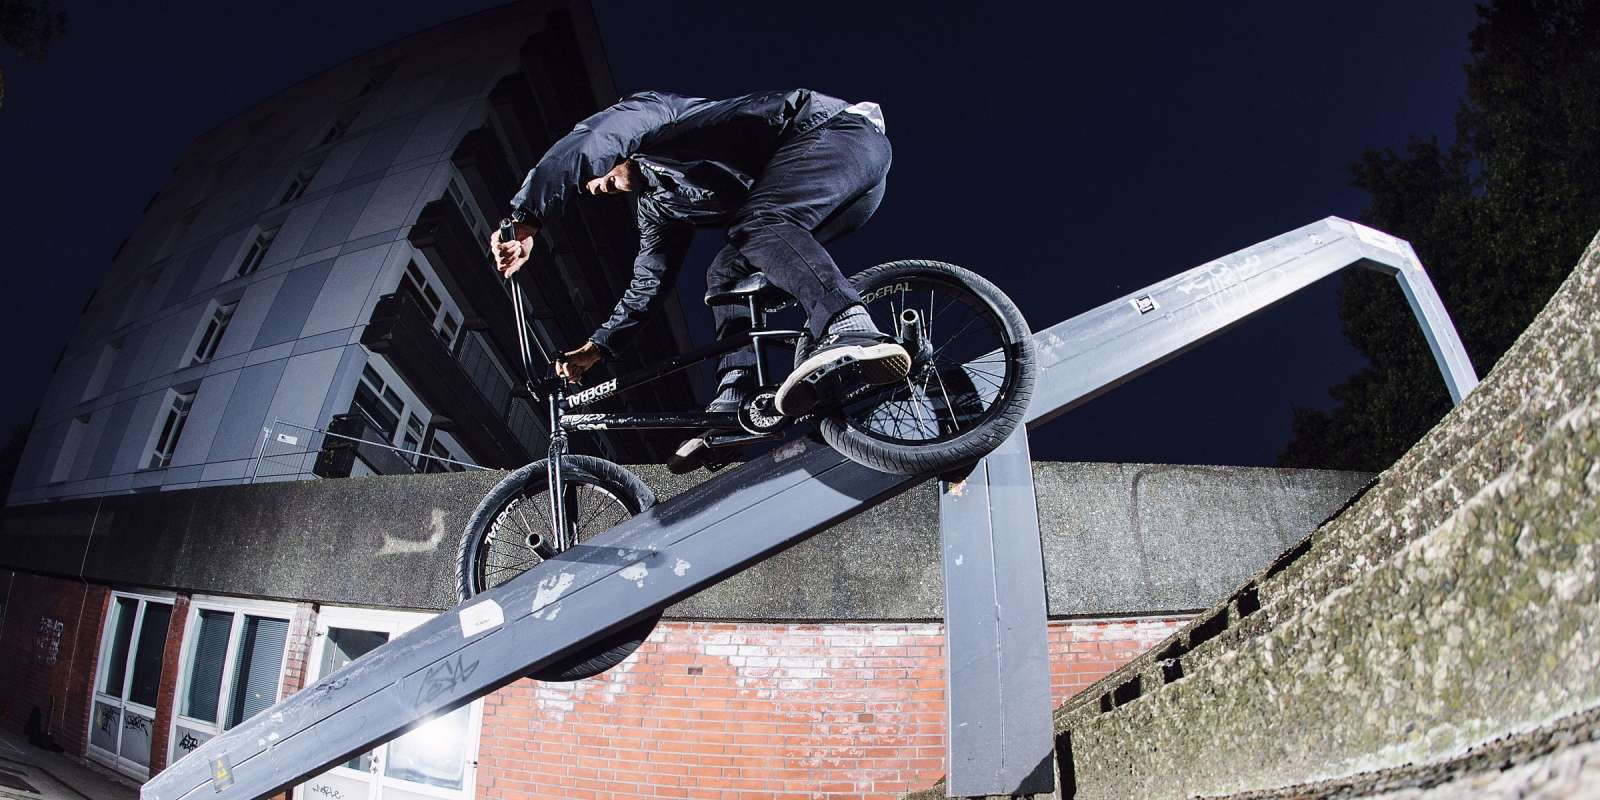 Another episode of the Lost in BMX series.